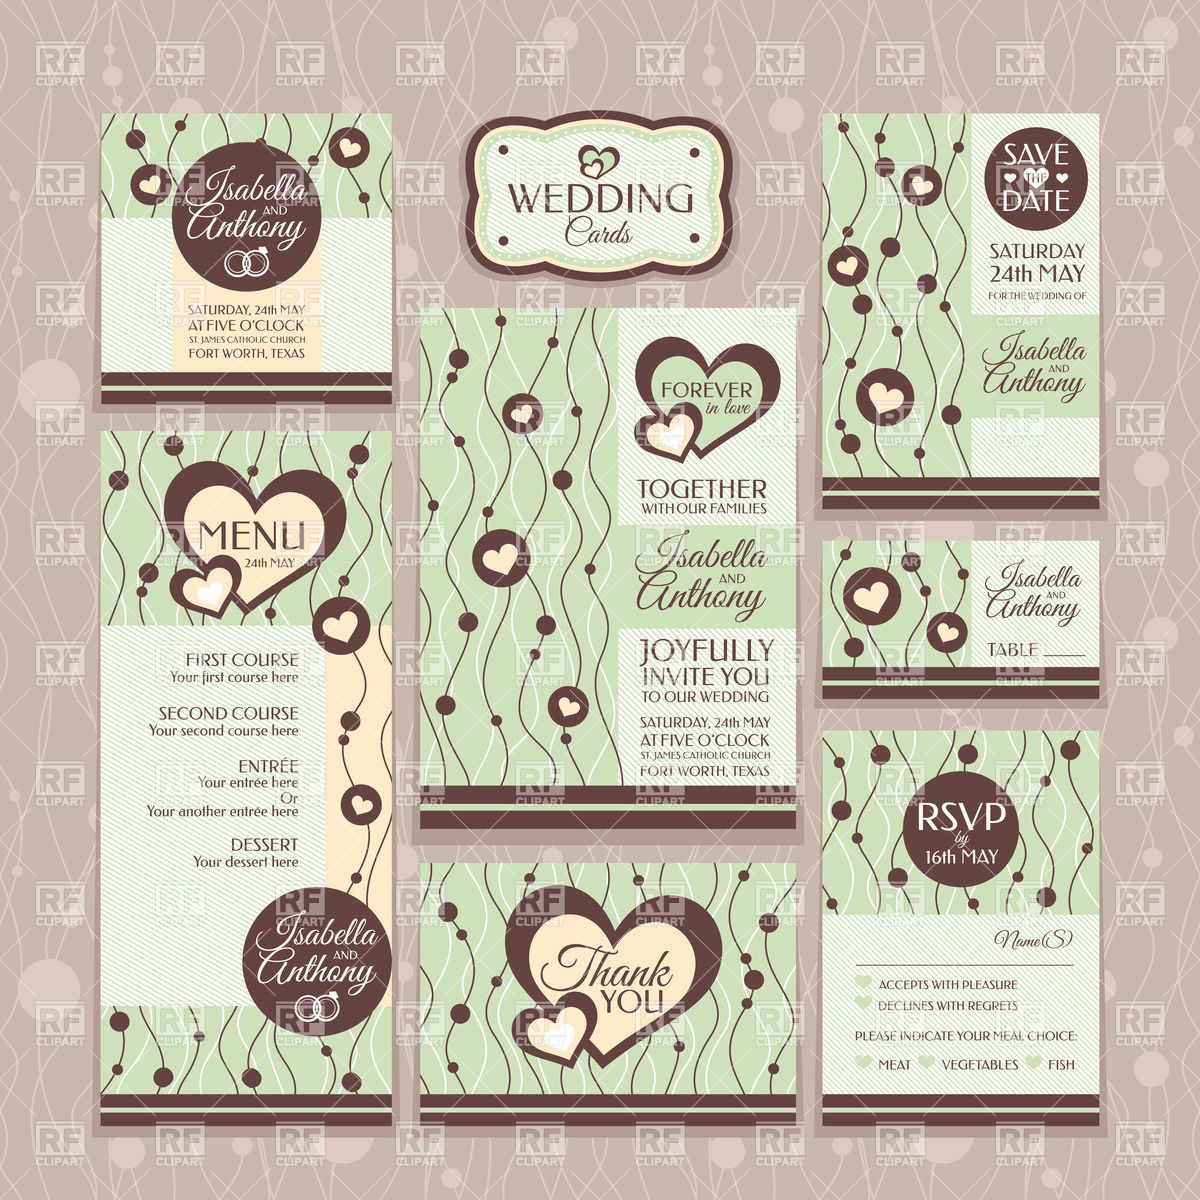 Set of wedding invitations, thank you cards, table card, and menu.